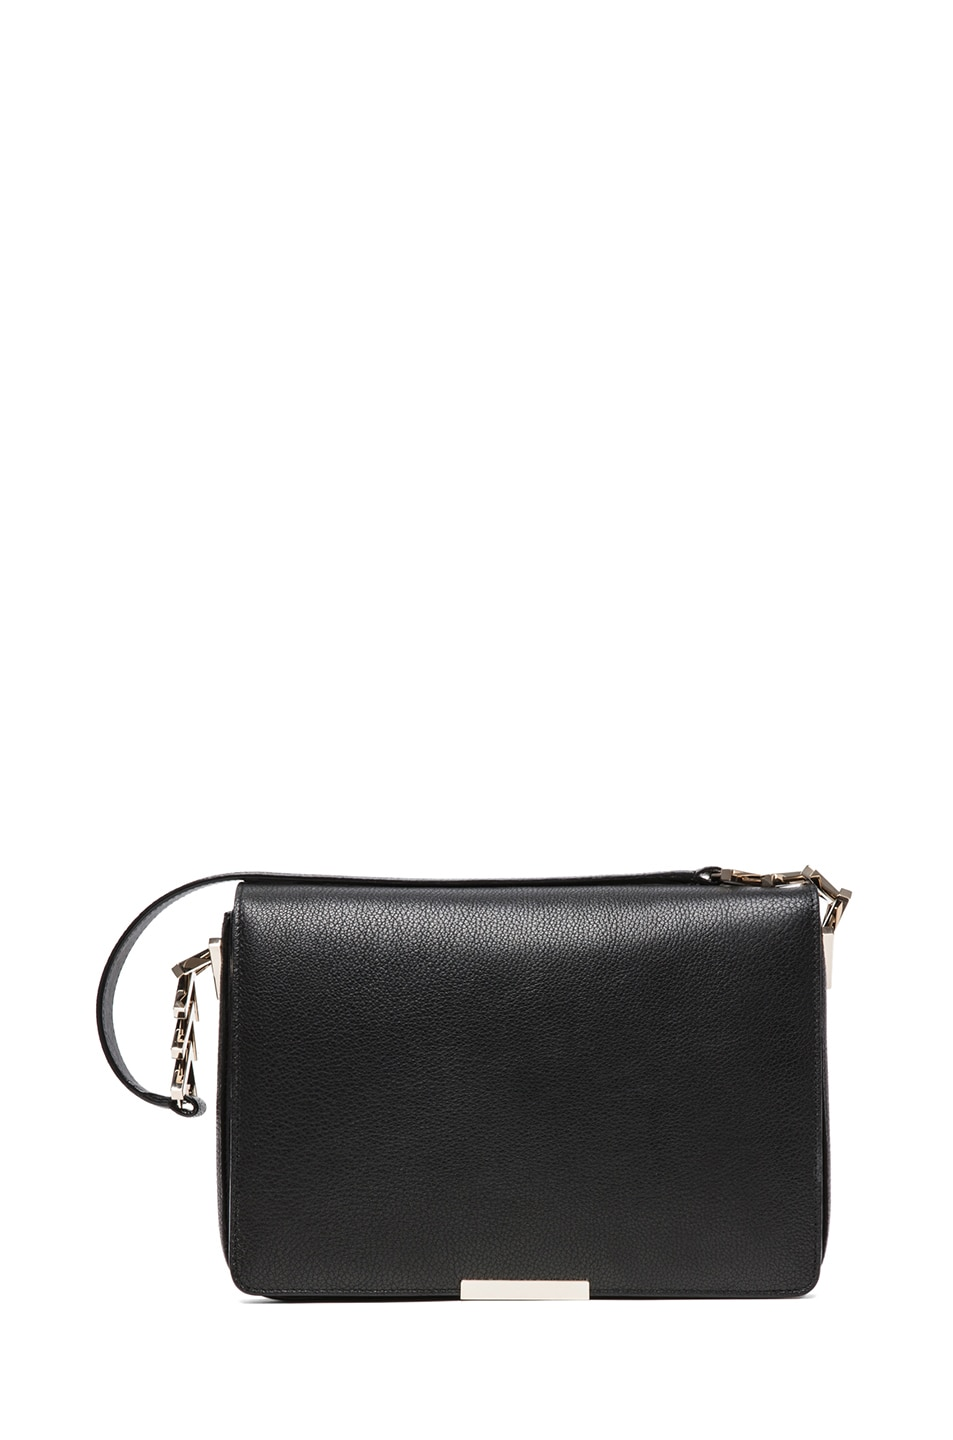 Image 1 of Victoria Beckham V Link Shoulder Bag in Black